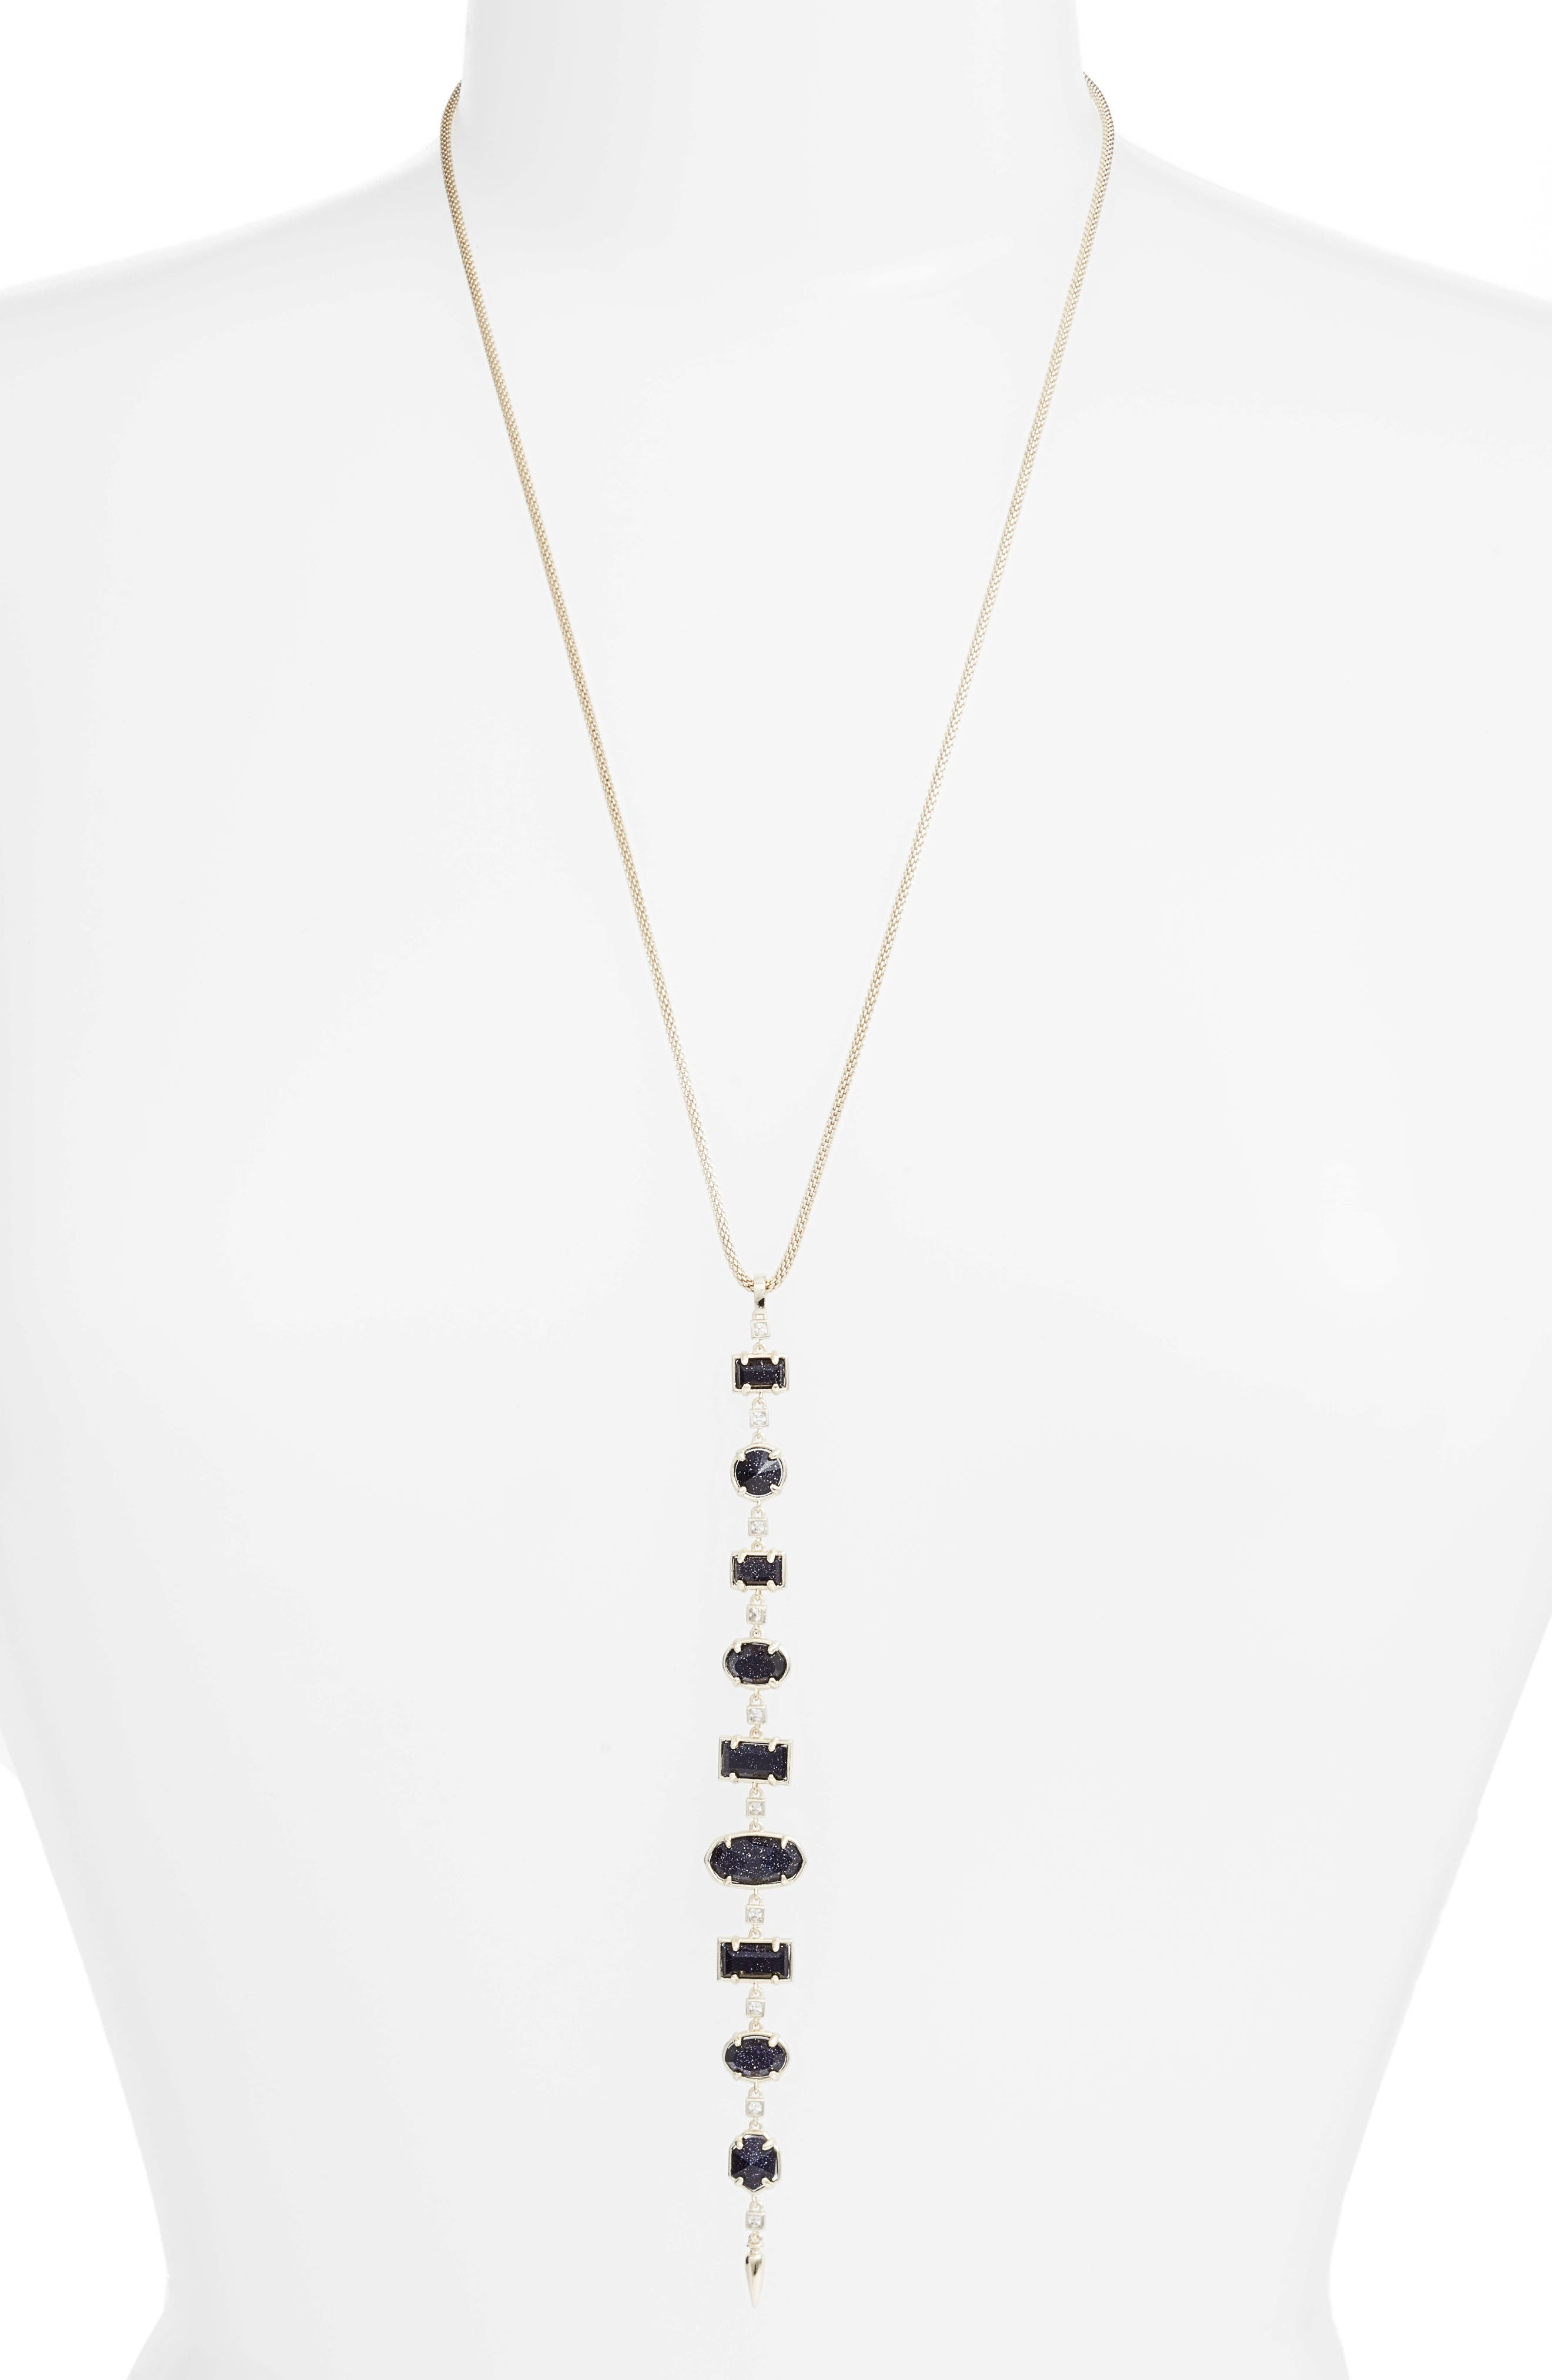 Kendra Scott Braxton Stone Drop Pendant Necklace (Nordstrom Exclusive)